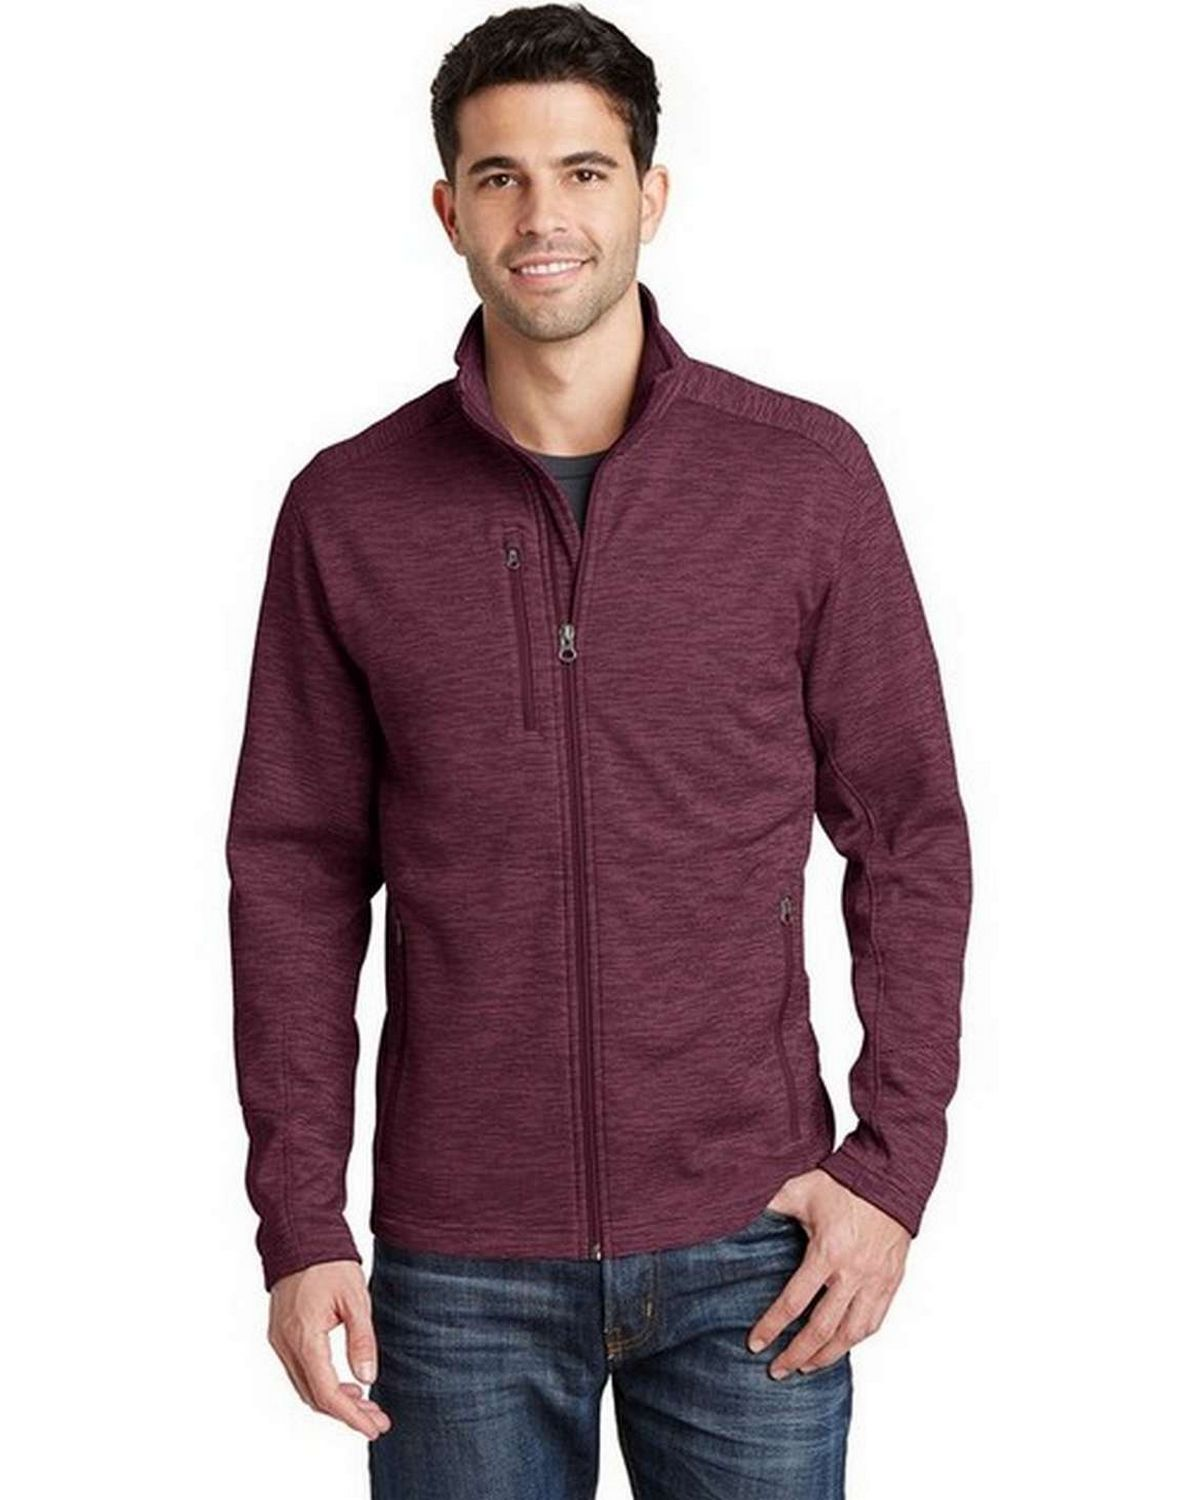 Port Authority F231 Digi Stripe Fleece Jacket